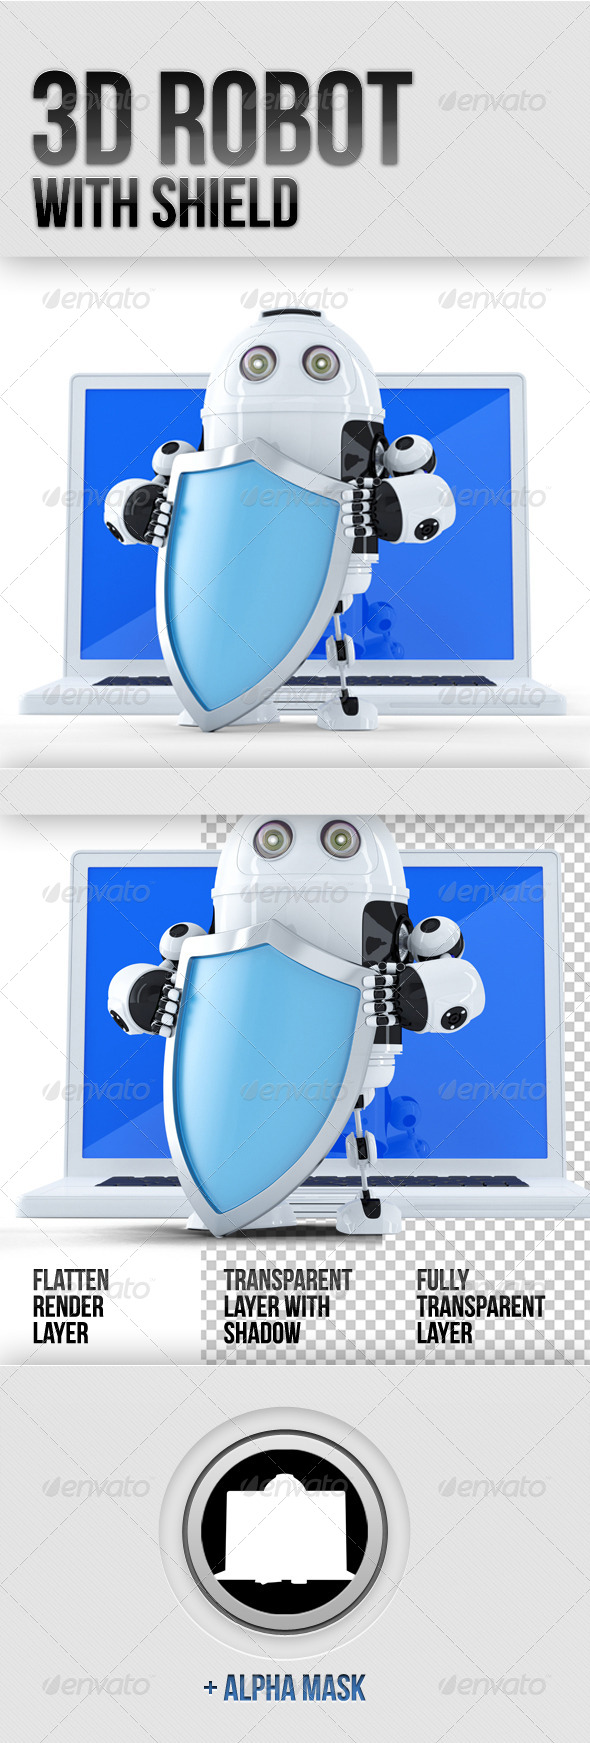 3D Robot with Shield - Technology 3D Renders